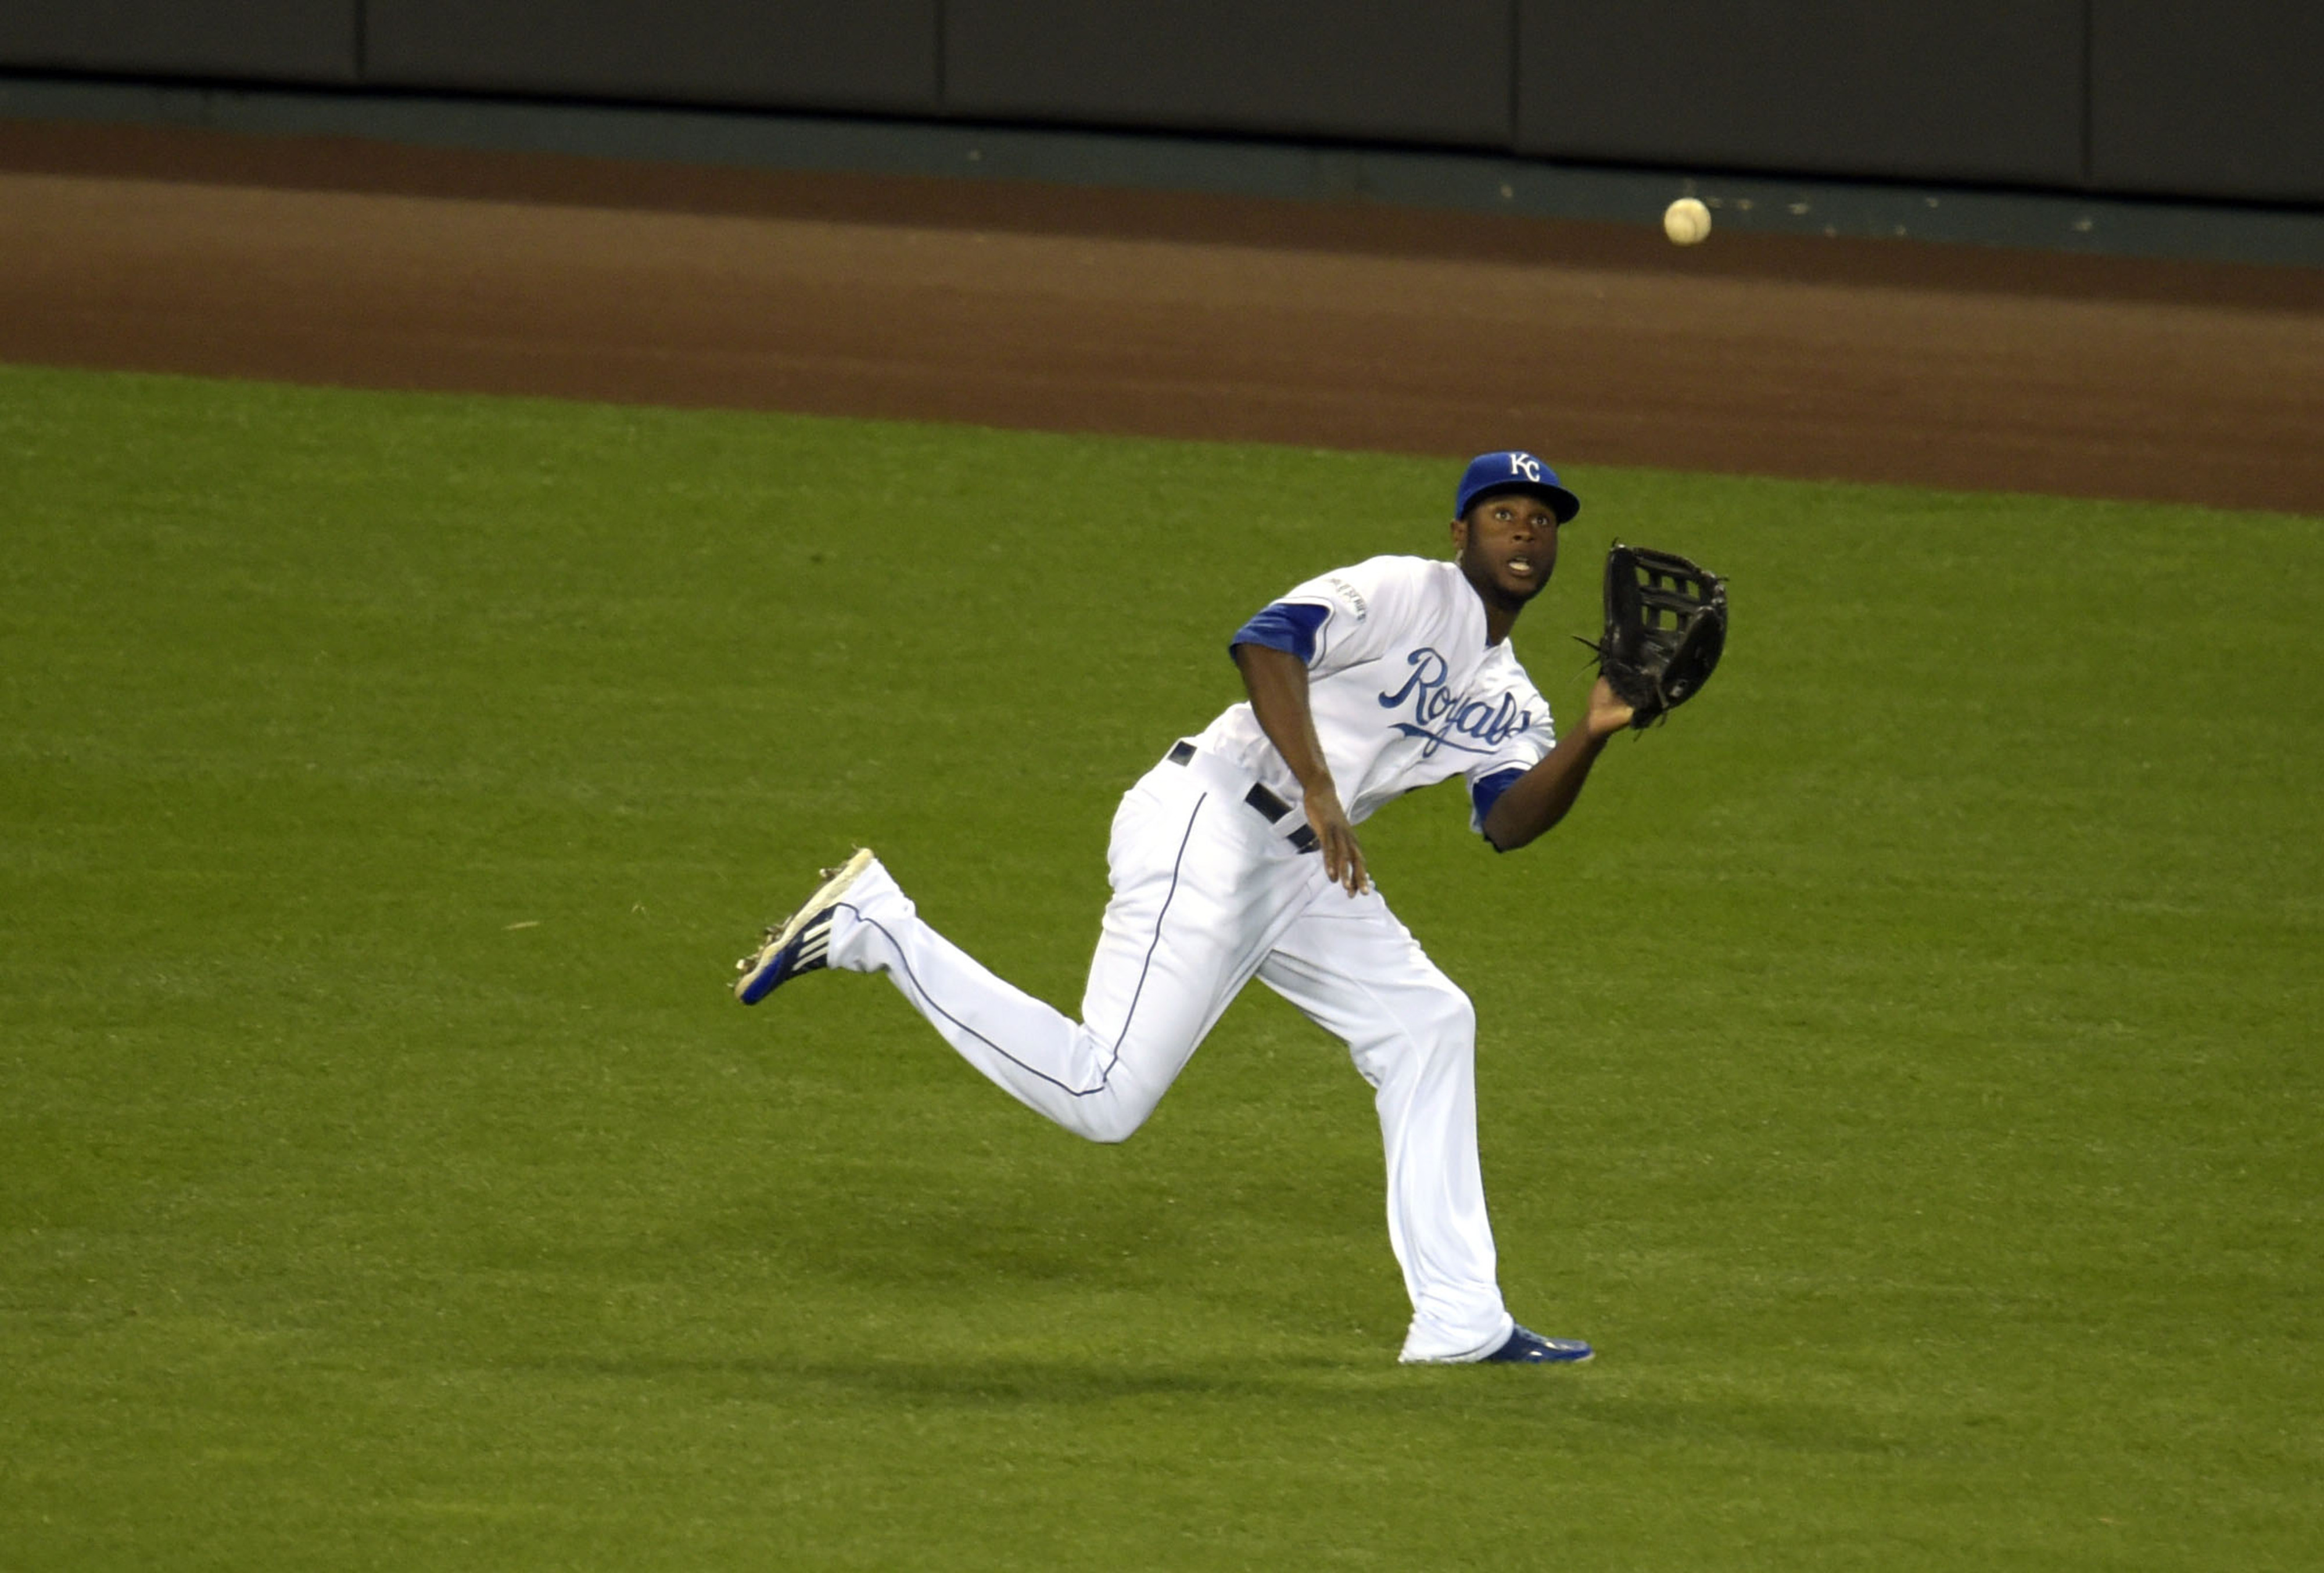 They made up a fielding award for Lorenzo Cain